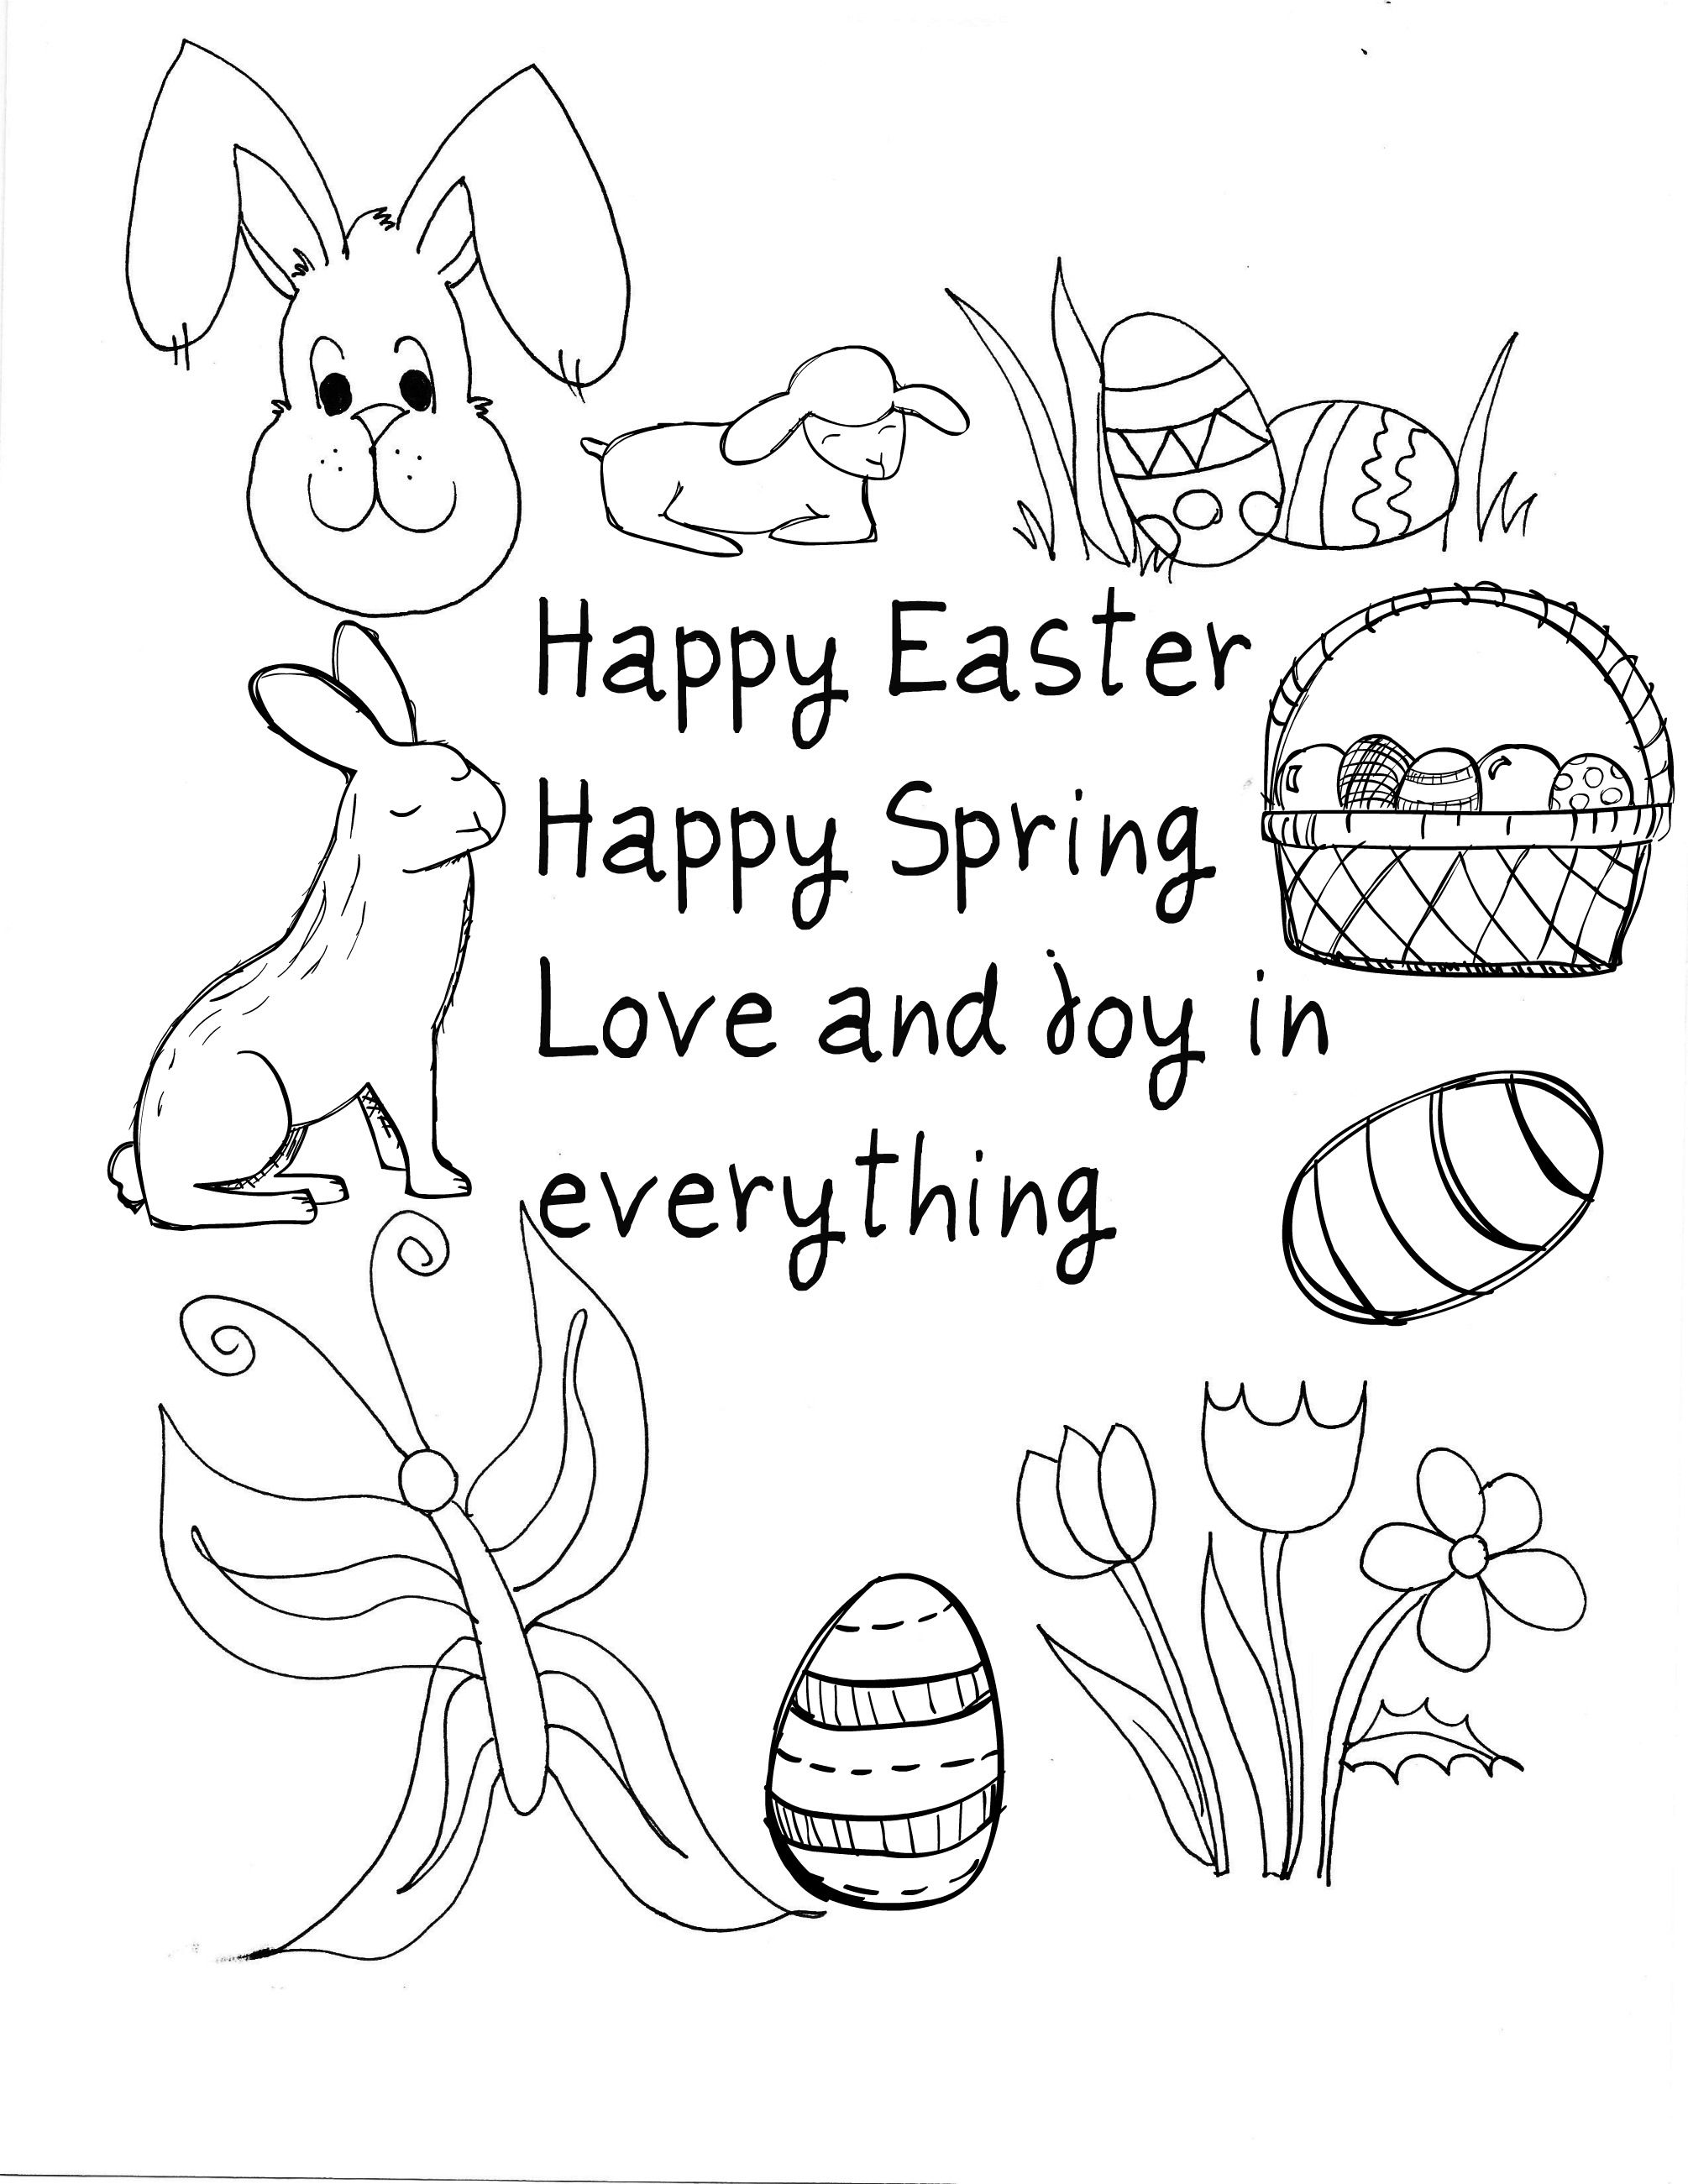 free printable easter coloring pages crafts - Easter Printable Coloring Pages